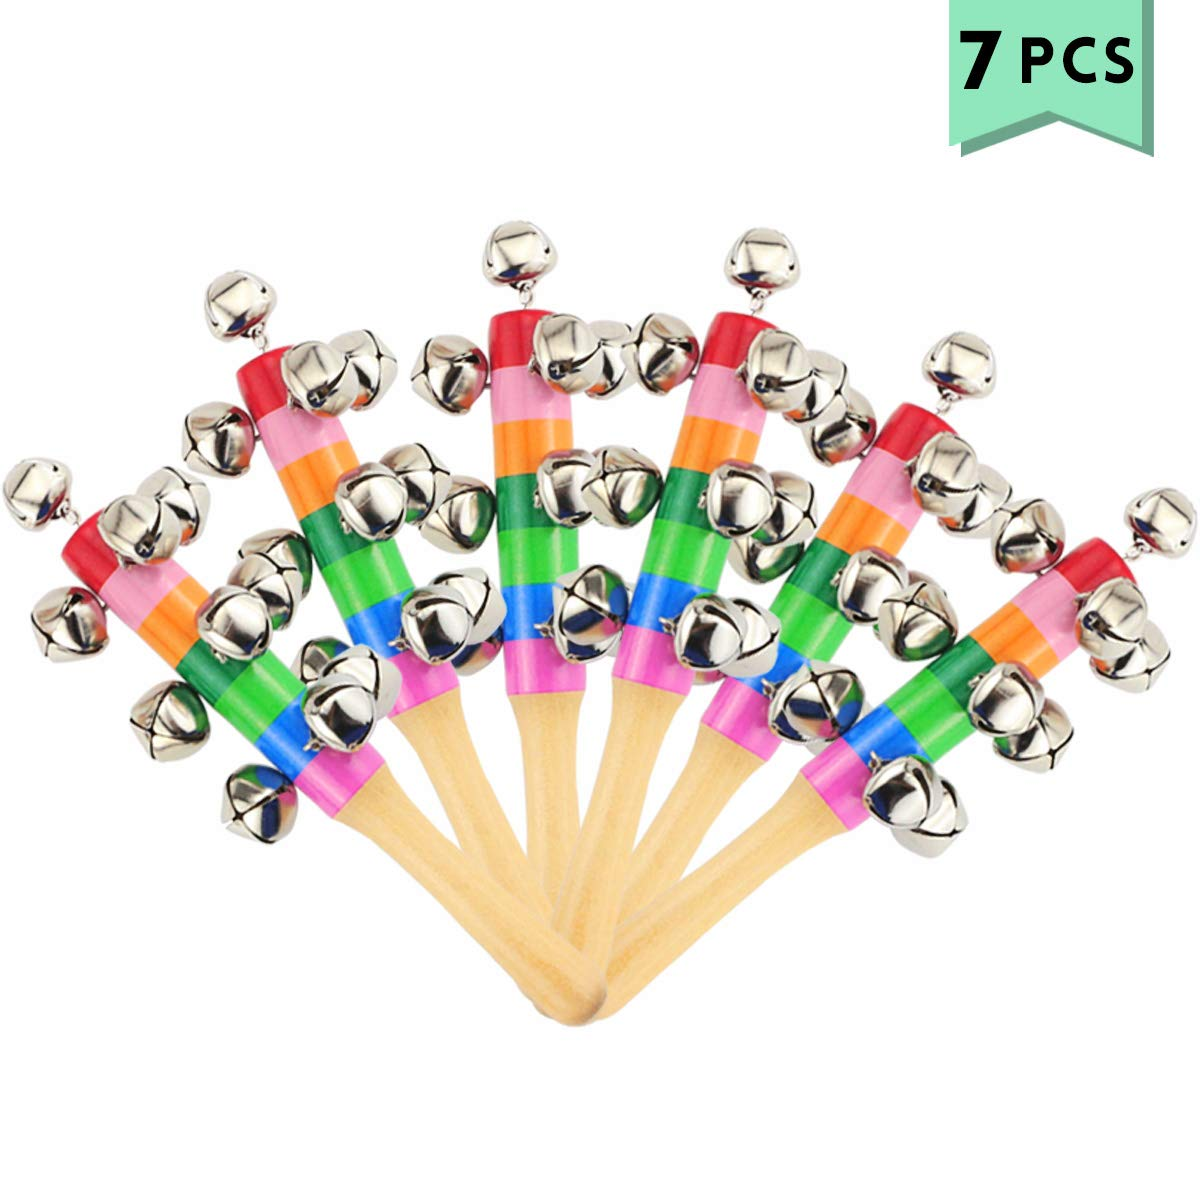 Oruuum 7PCS Bright Color Rainbow Handle Wooden Bells, Christmas Bell For Kids Jingle Stick Shaker Rattle Baby Kids Children Musical Toys by Oruuum